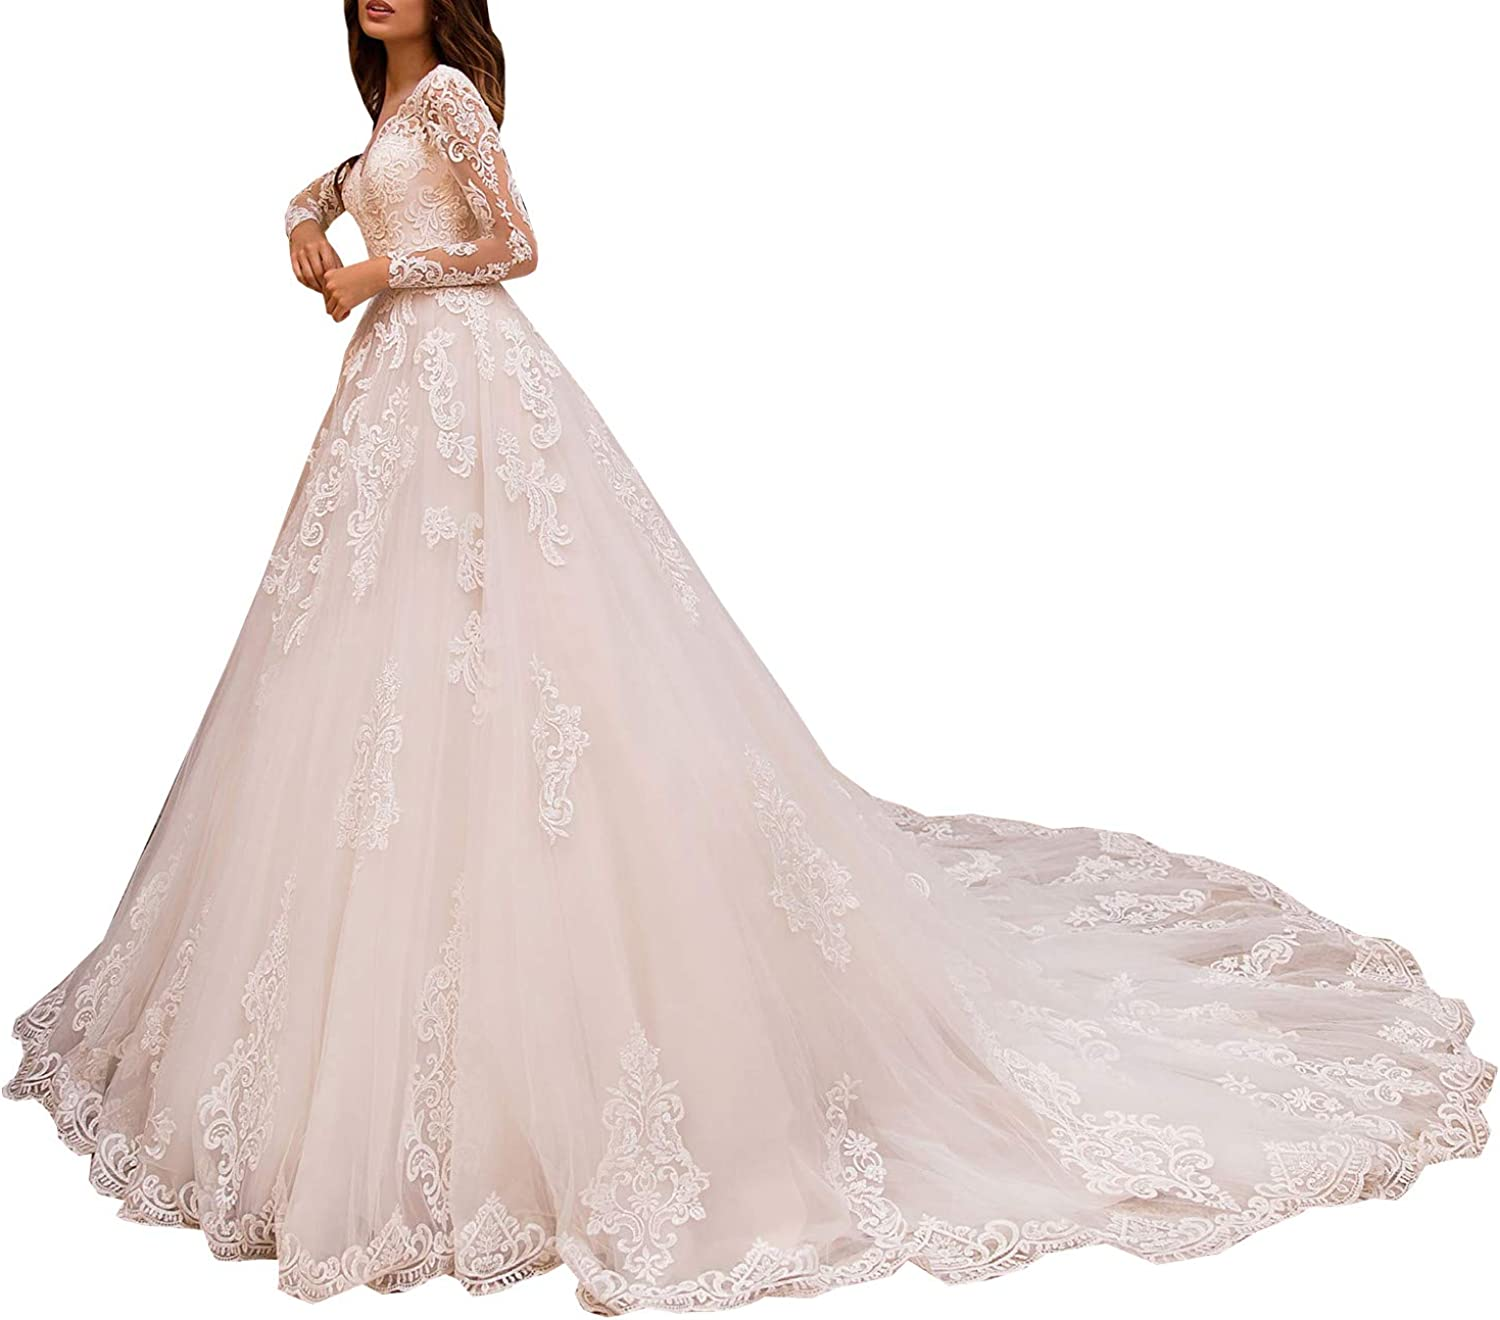 Melisa Women's Illusion Long Sleeve Lace Church Wedding Dresses for Bride with Train Bridal Ball Gown Plus Size